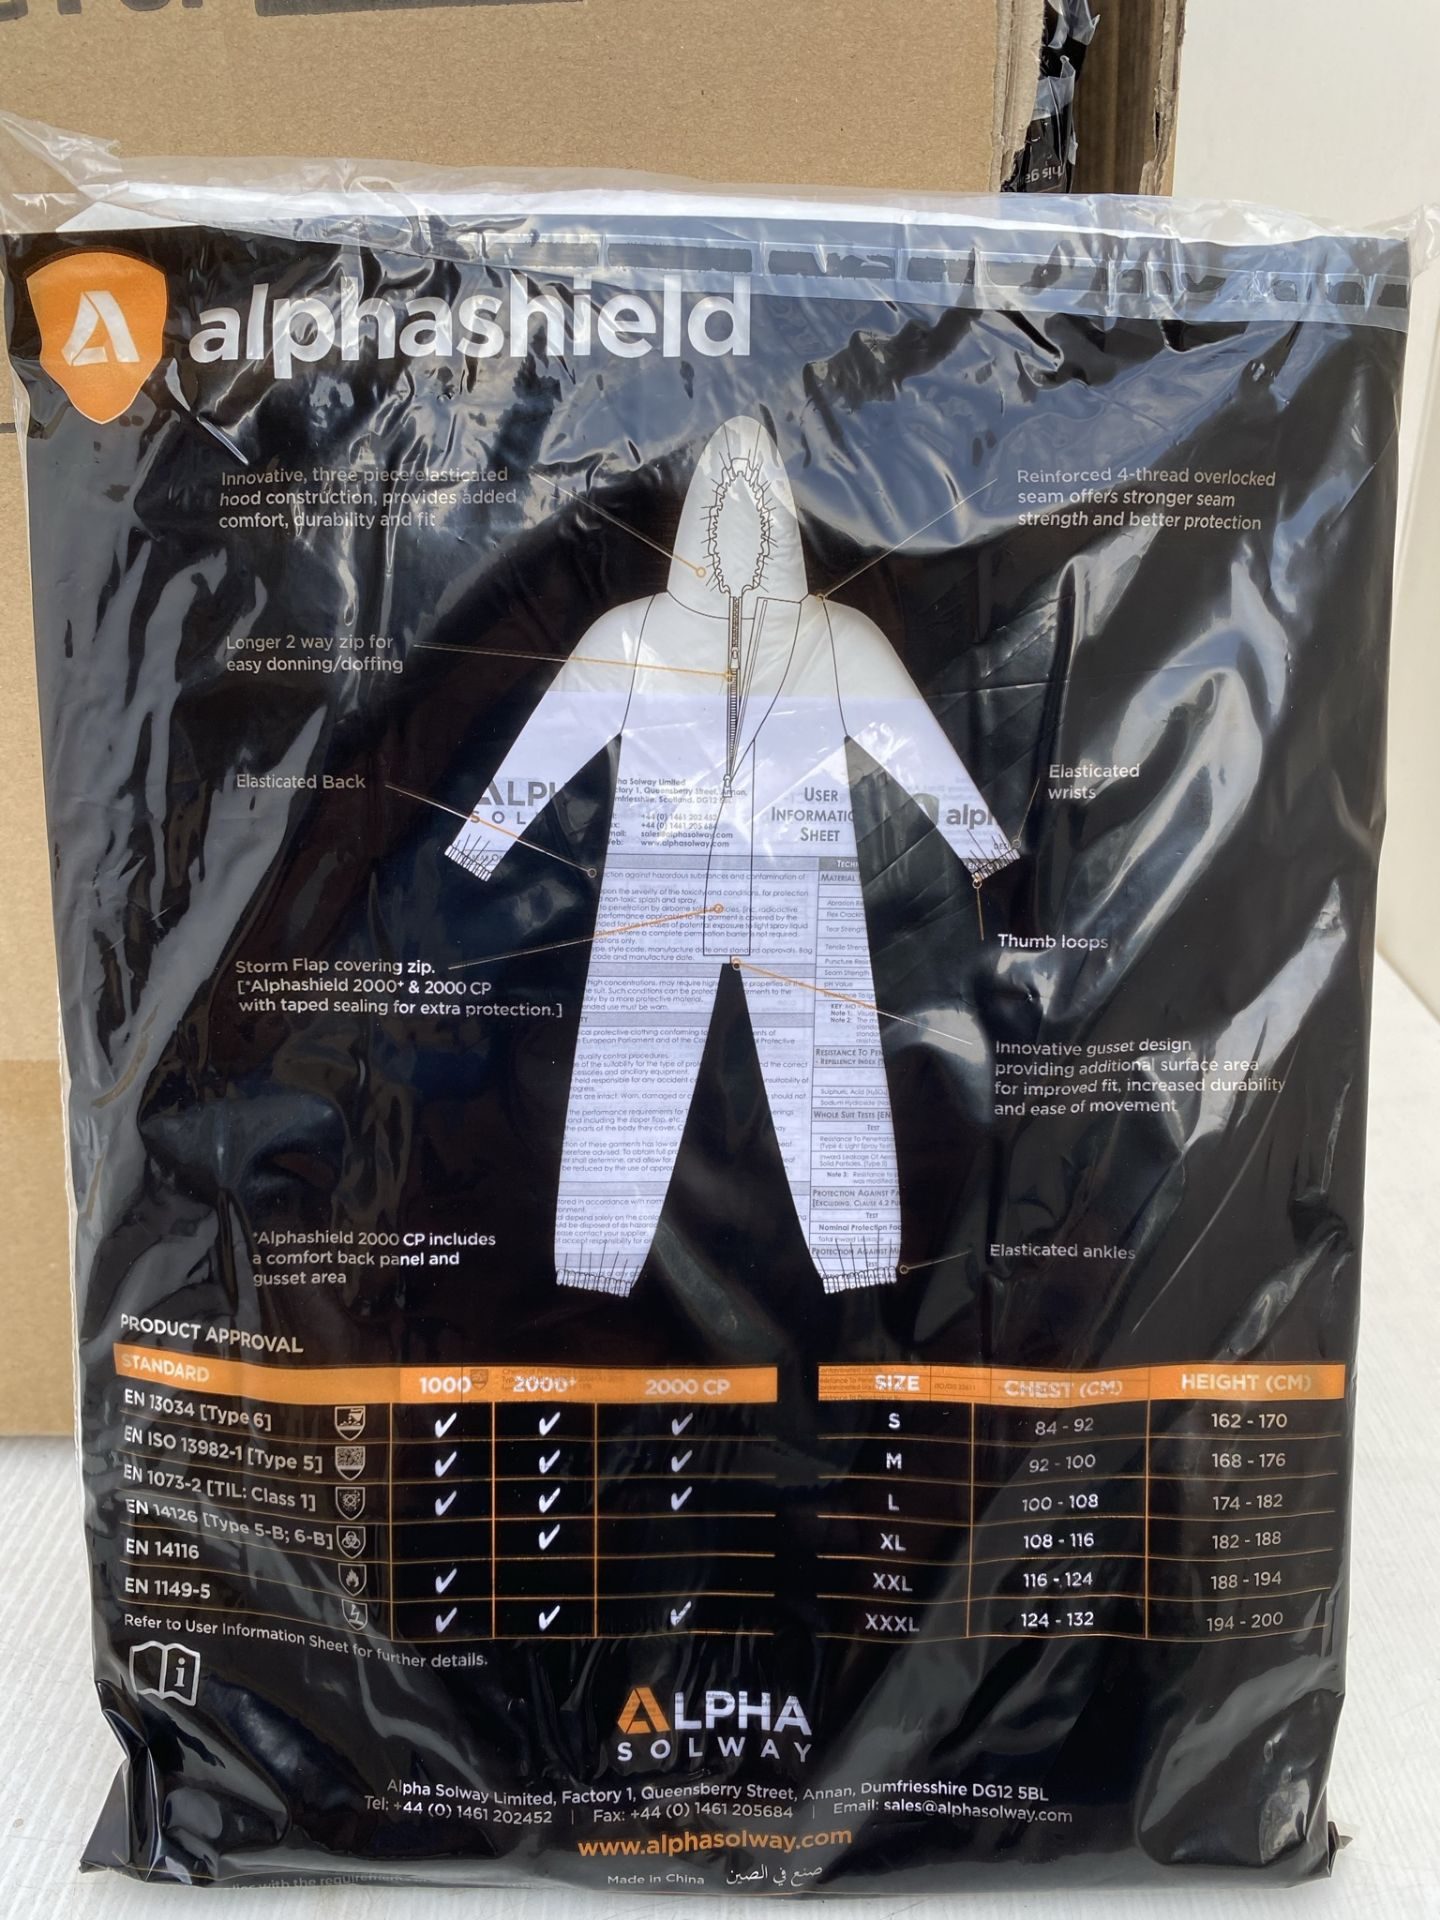 50 x Alpha Solway - Alphashield 2000+ protective S2BH+ white oversuits - Assorted sizes Medium, - Image 3 of 3